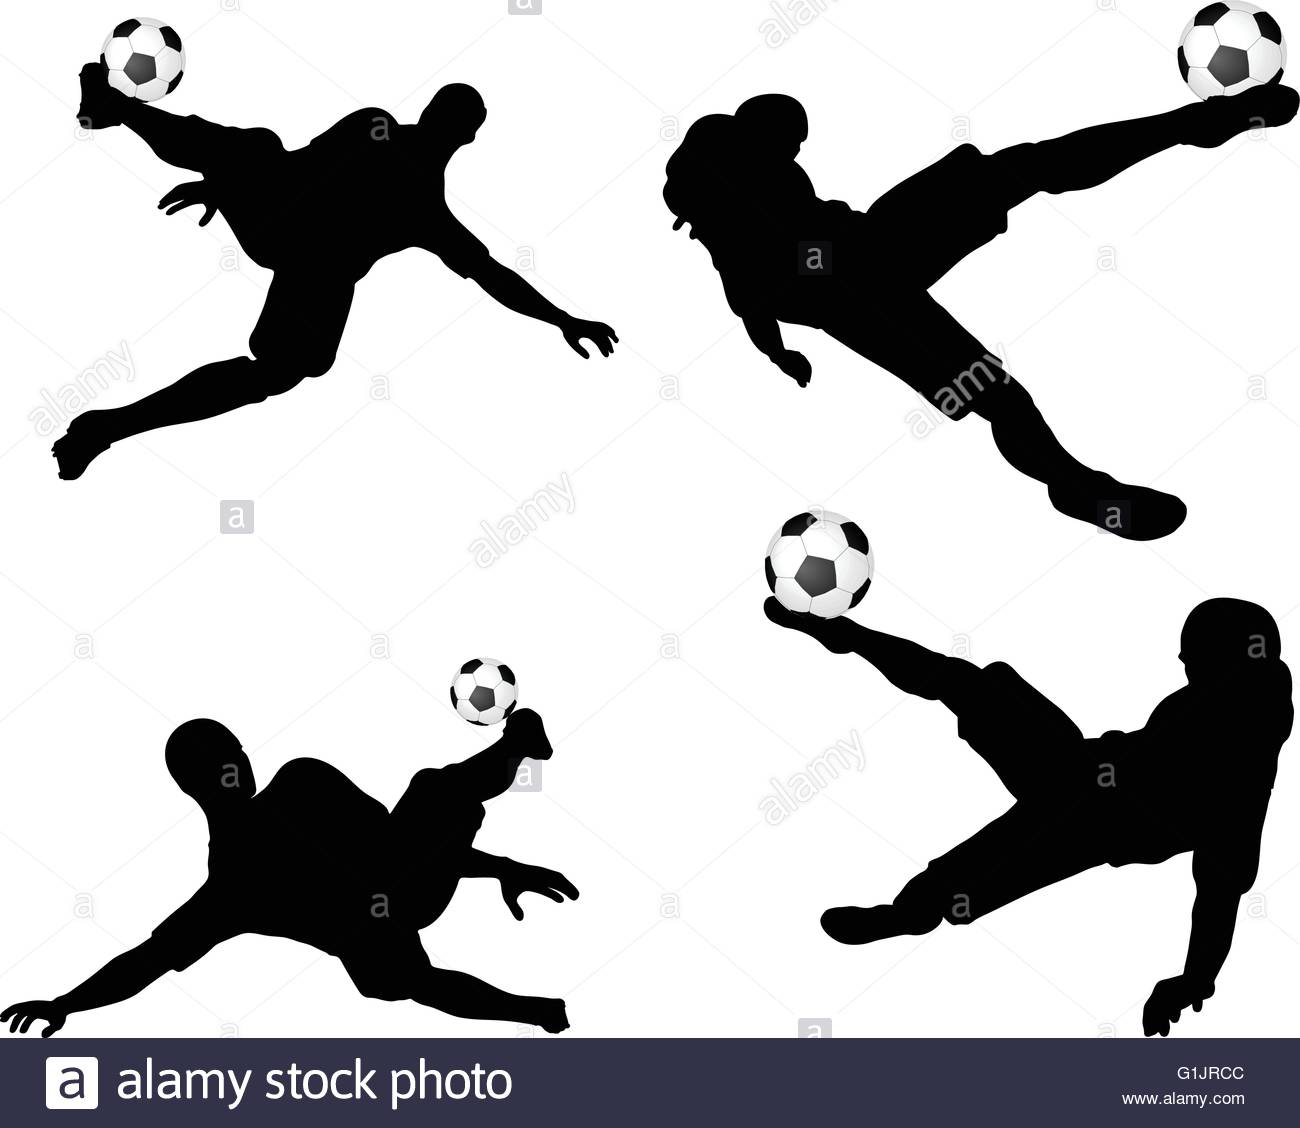 1300x1128 Isolated Poses Of Soccer Players Silhouettes In Air Position Stock